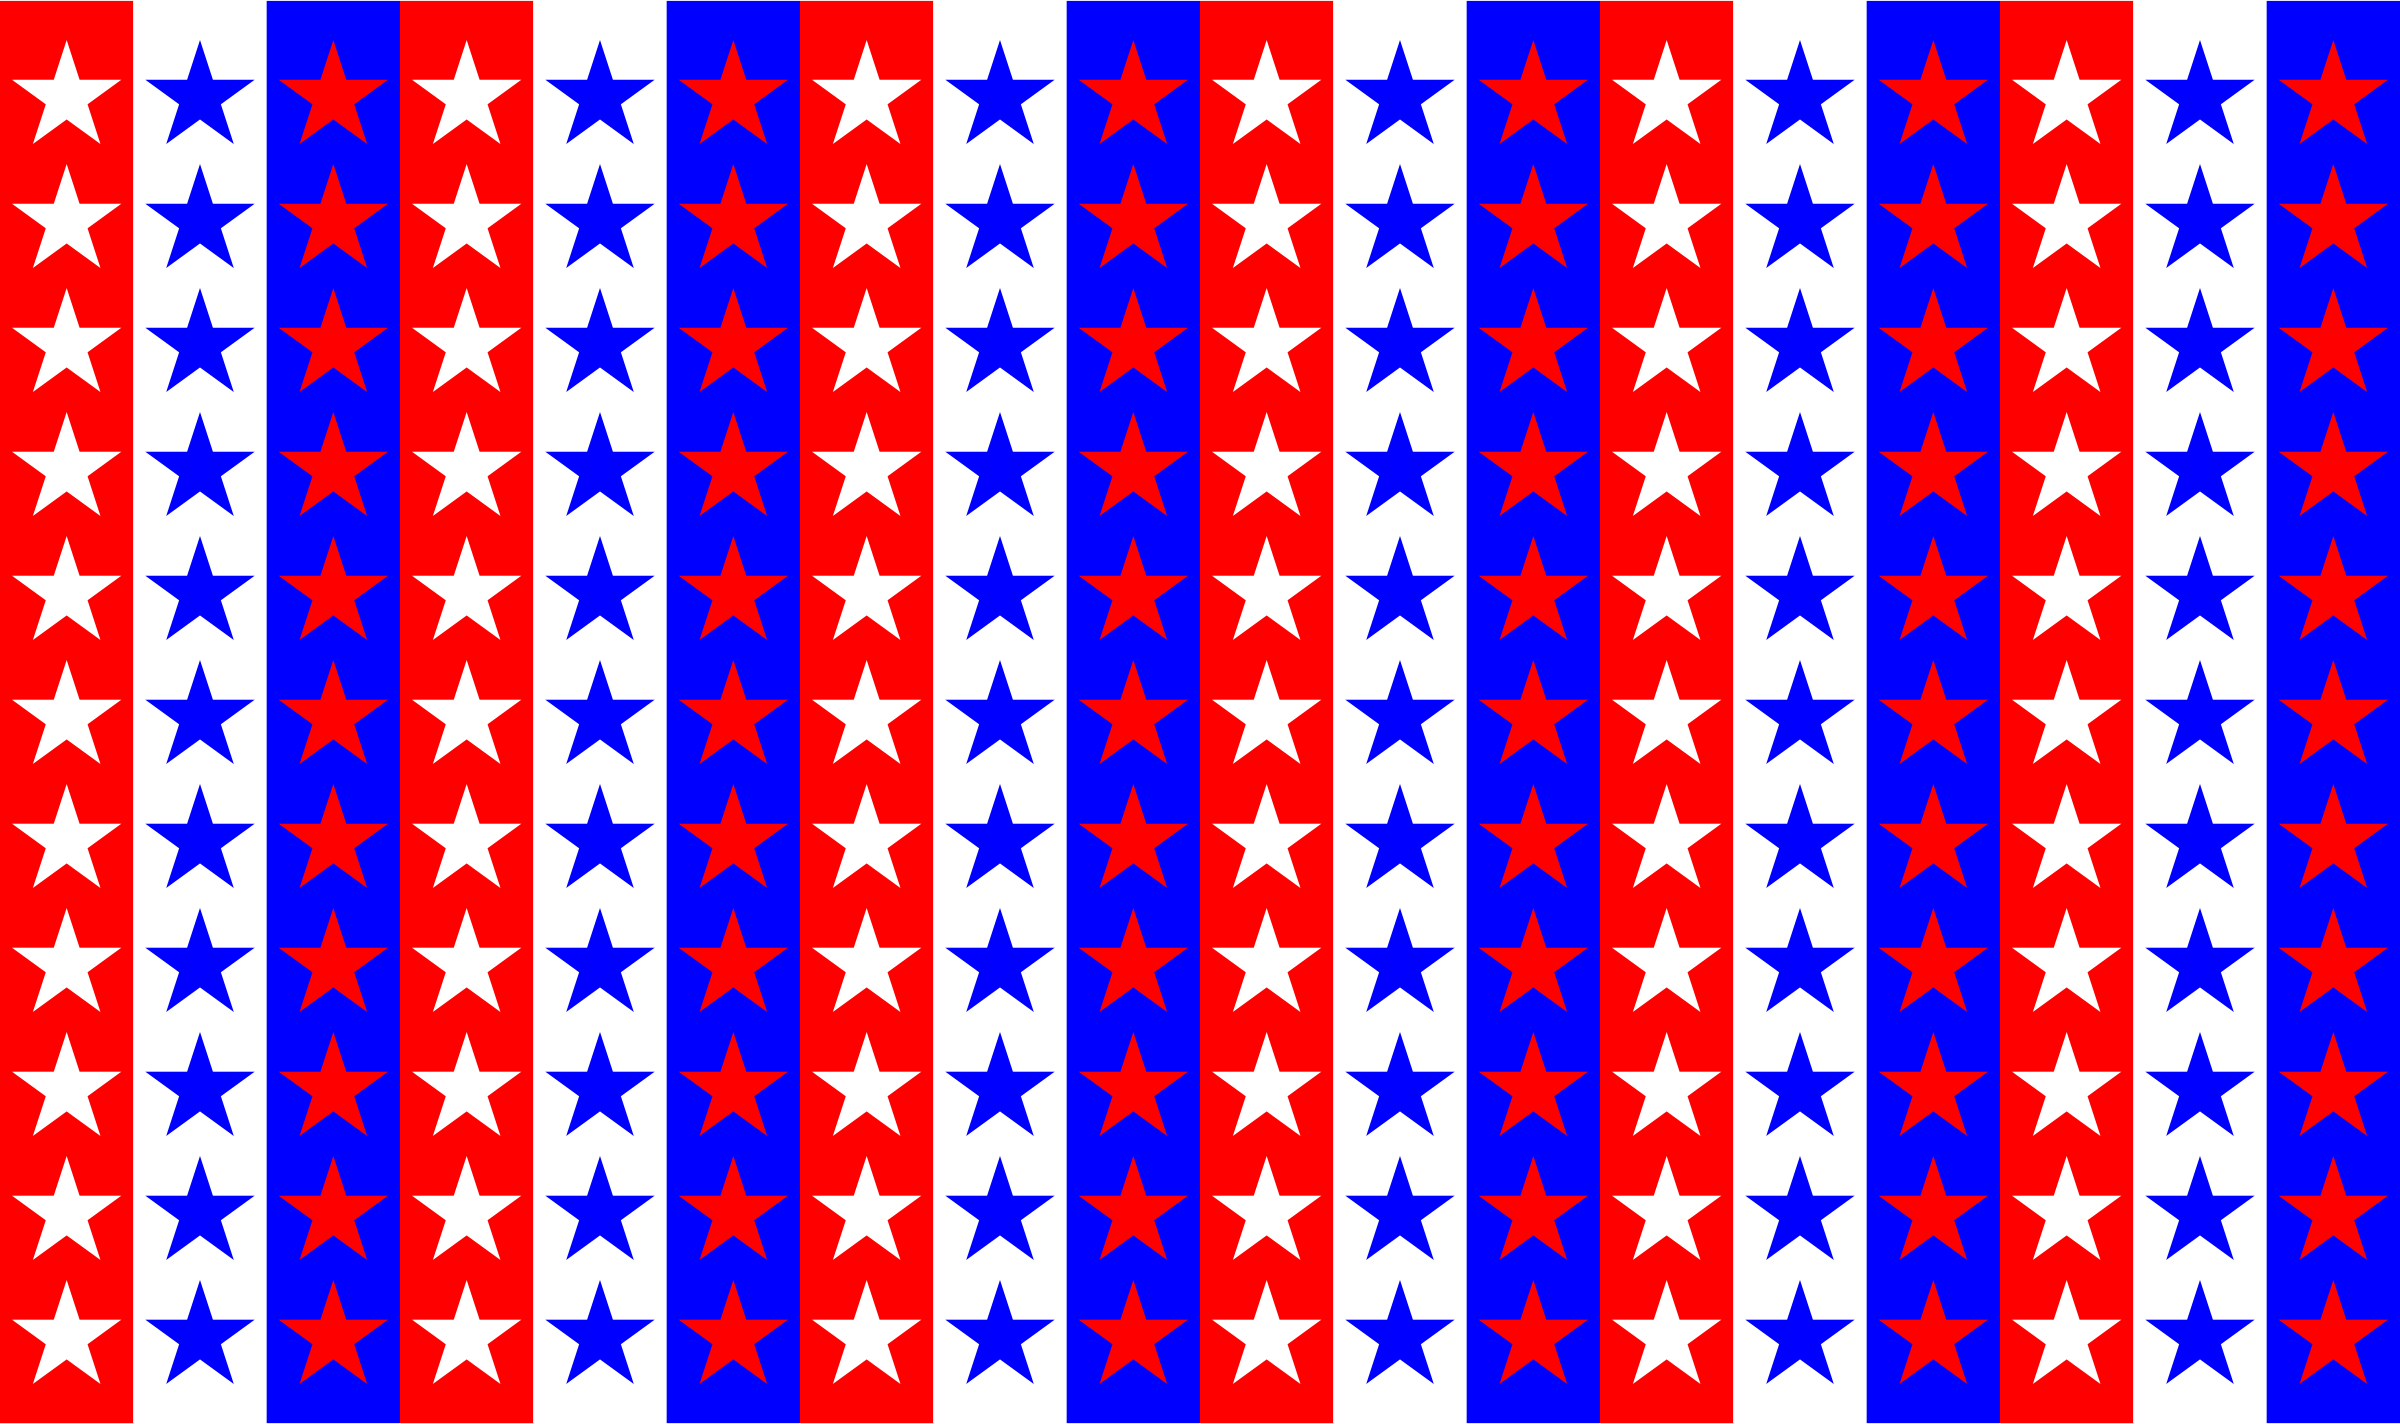 Clipart - Red White Blue Stars Background - photo#14